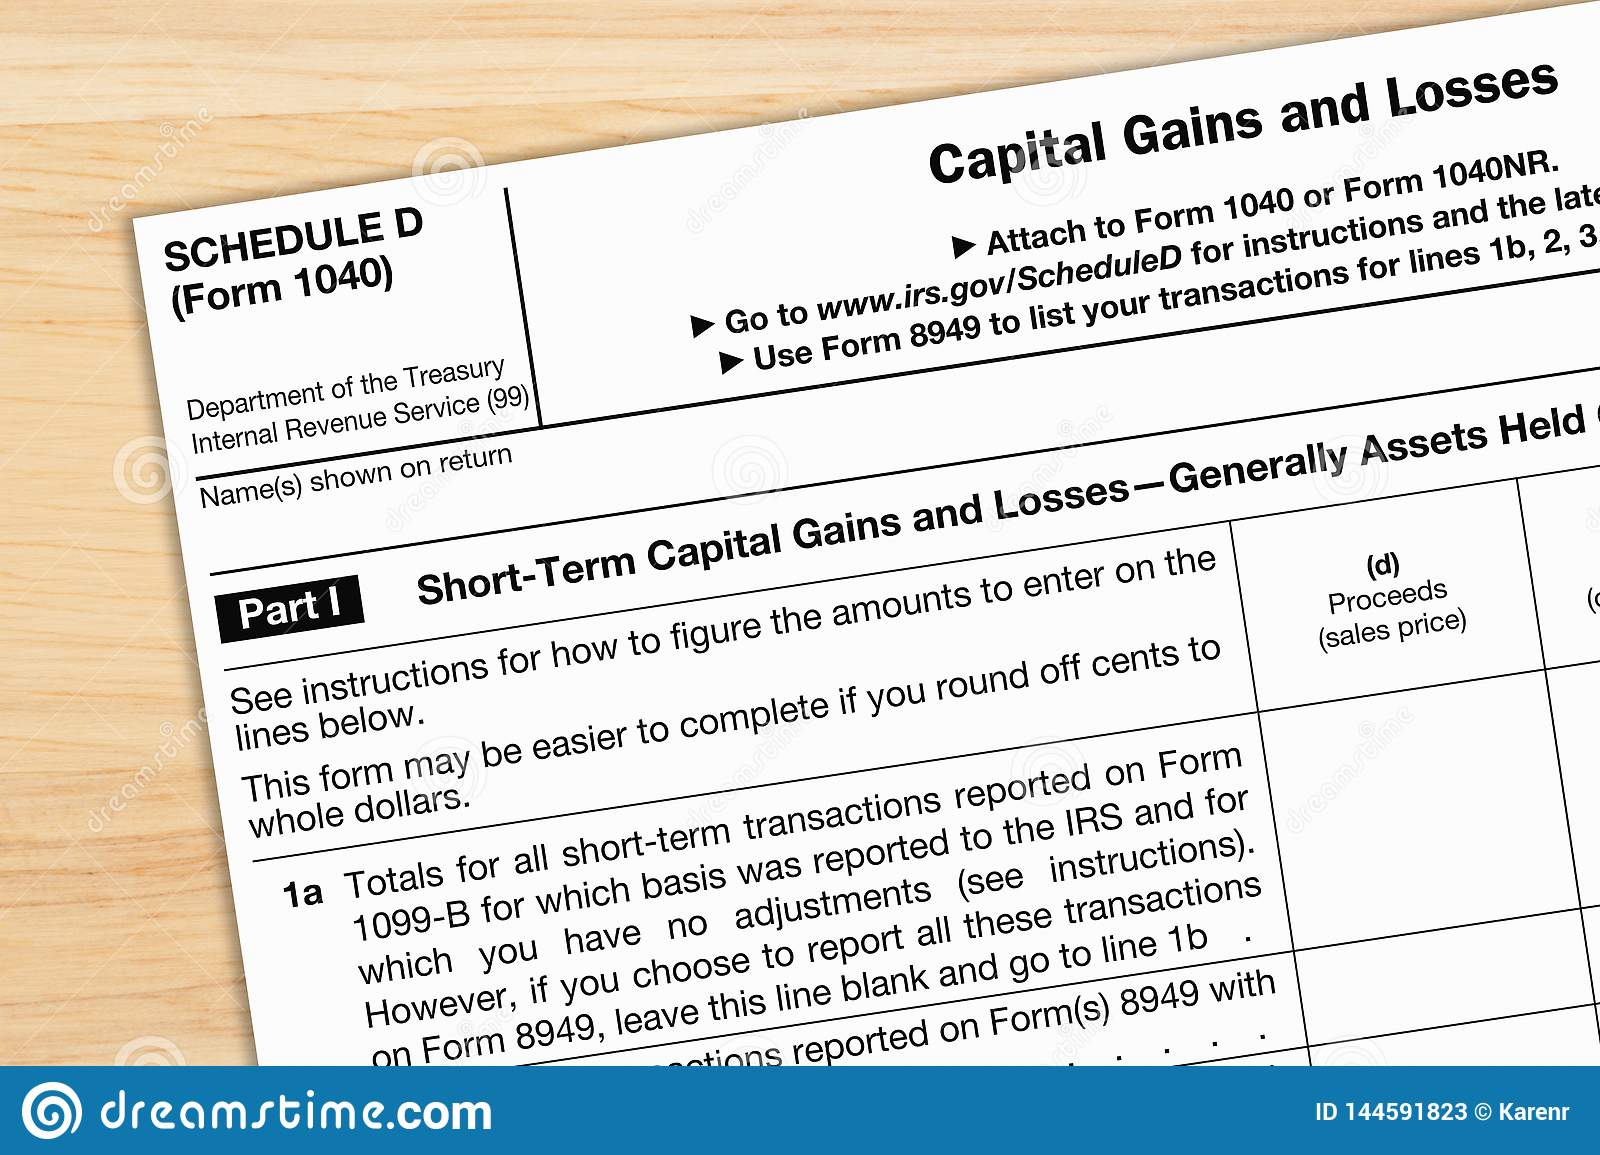 A US Federal Tax 1040 Schedule D Income Tax Form Editorial